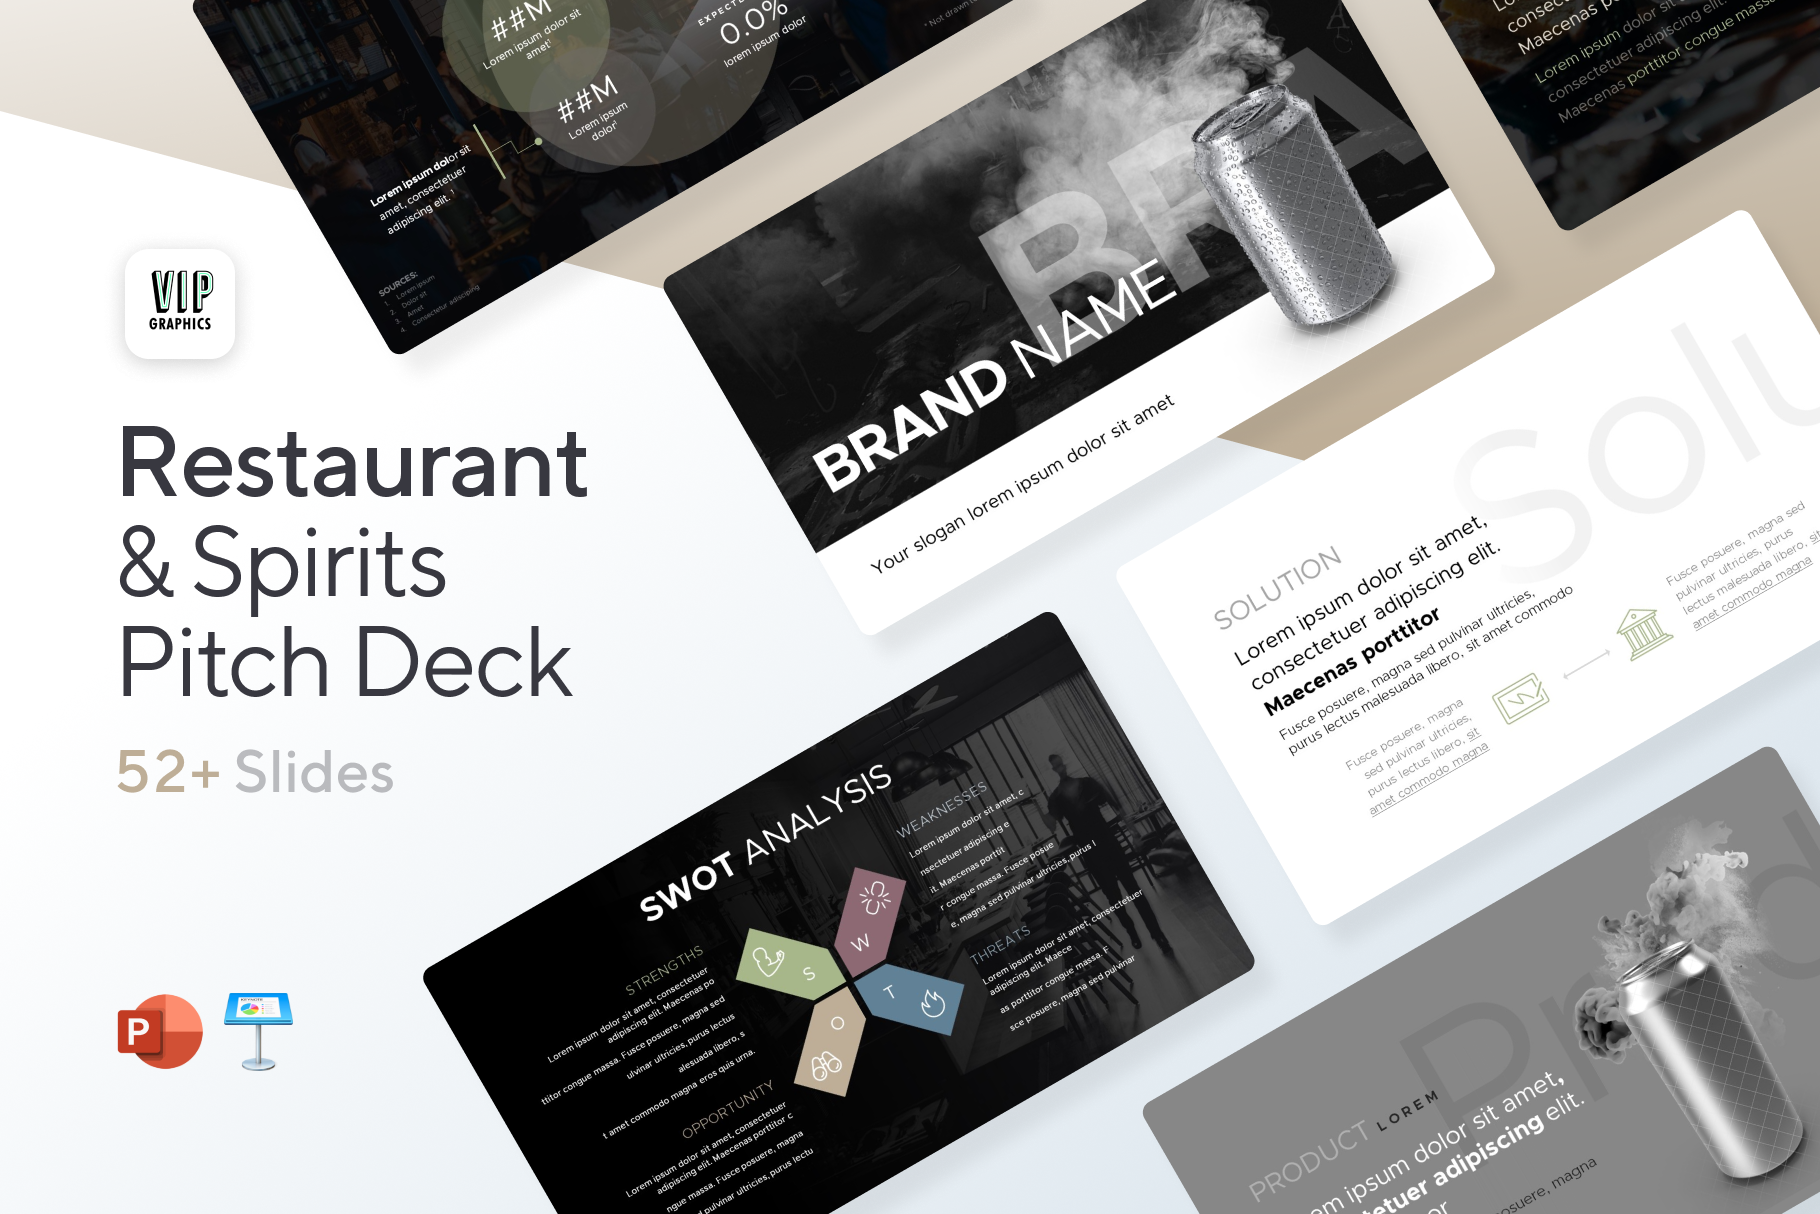 Restaurant & Spirits Pitch Deck Template for PowerPoint & Keynote | VIP.graphics